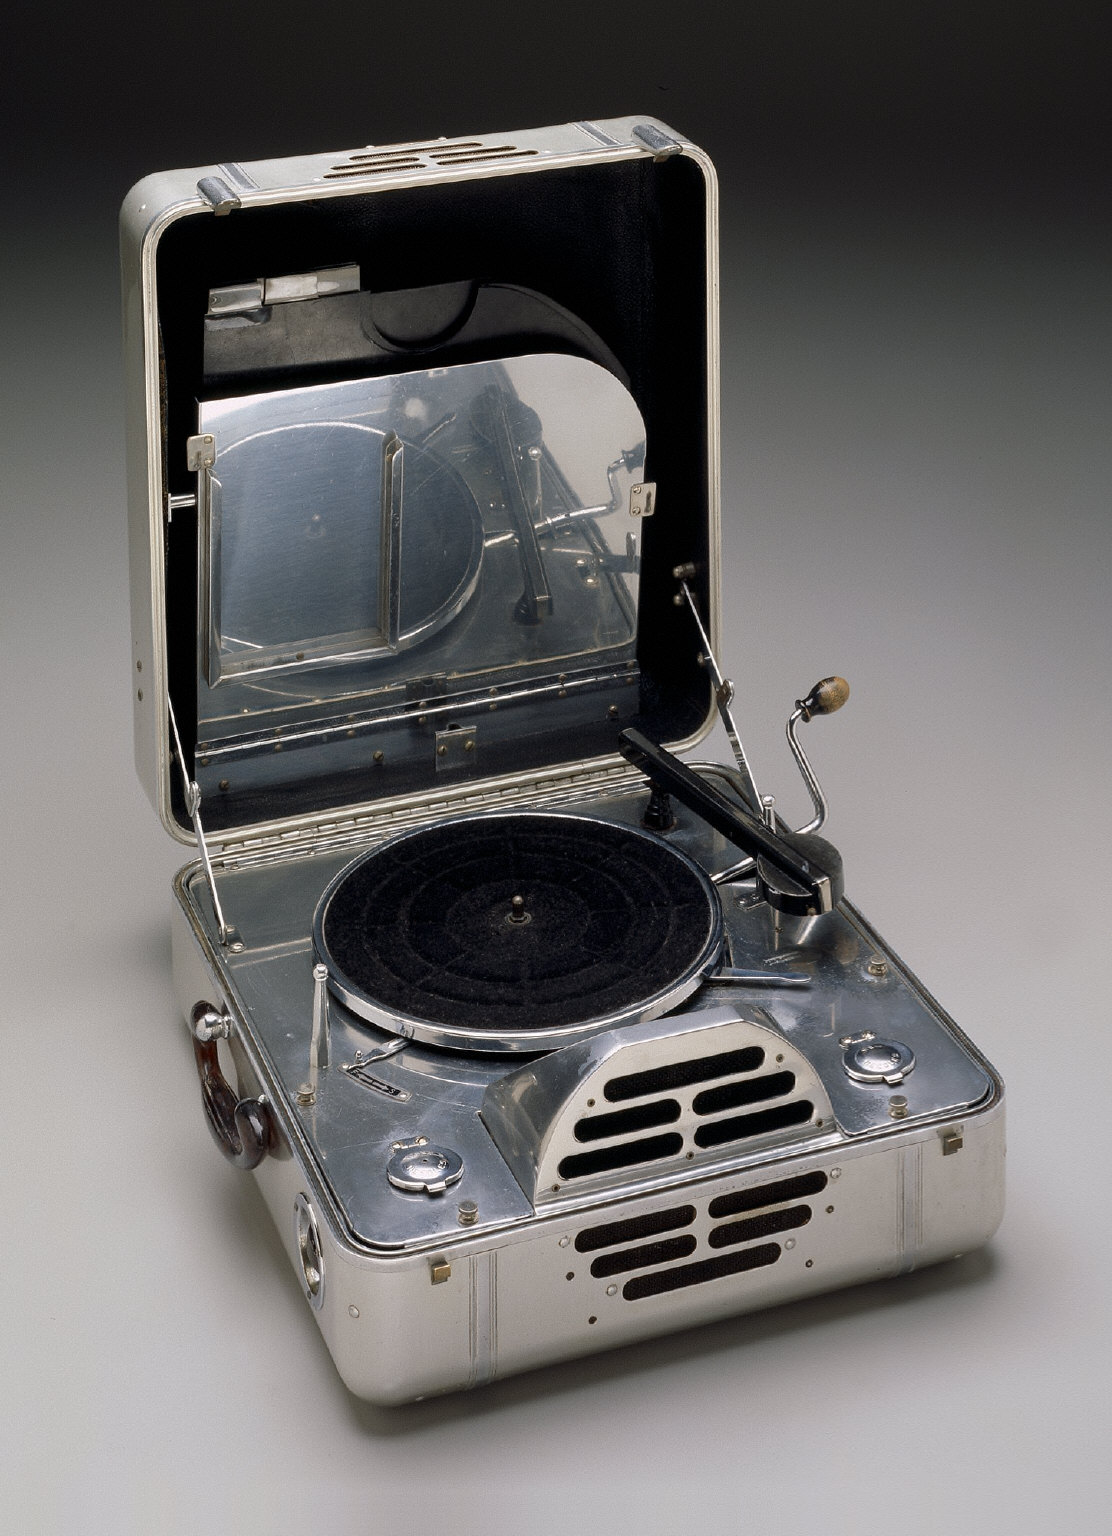 'RCA Victor Special' model phonograph